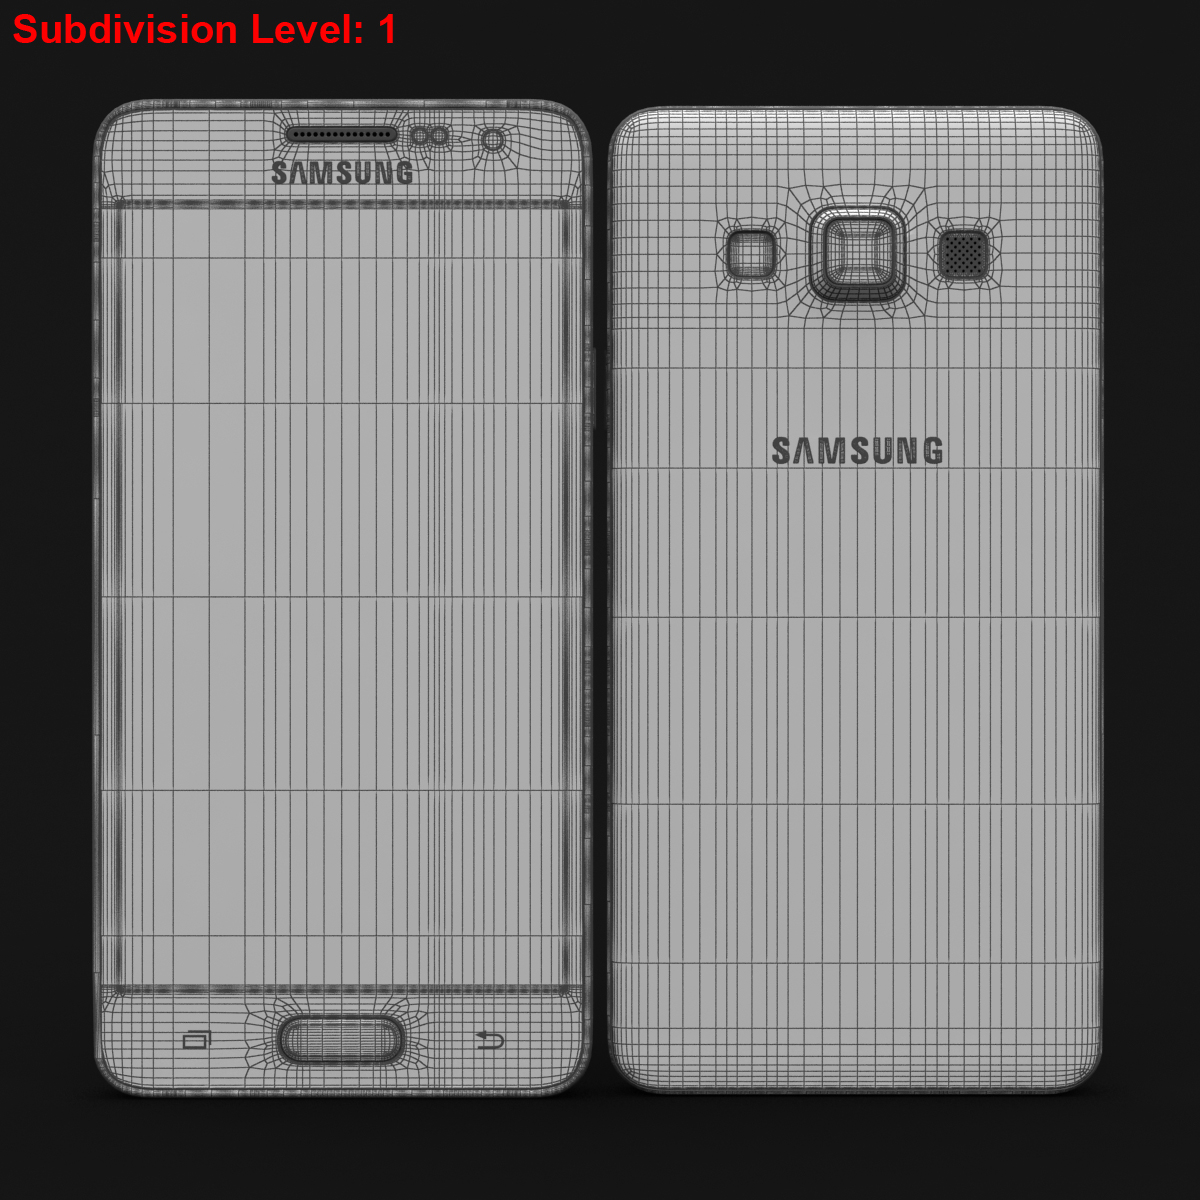 samsung galaxy a3 and a3 duos silver 3d model 3ds max fbx c4d obj 208326